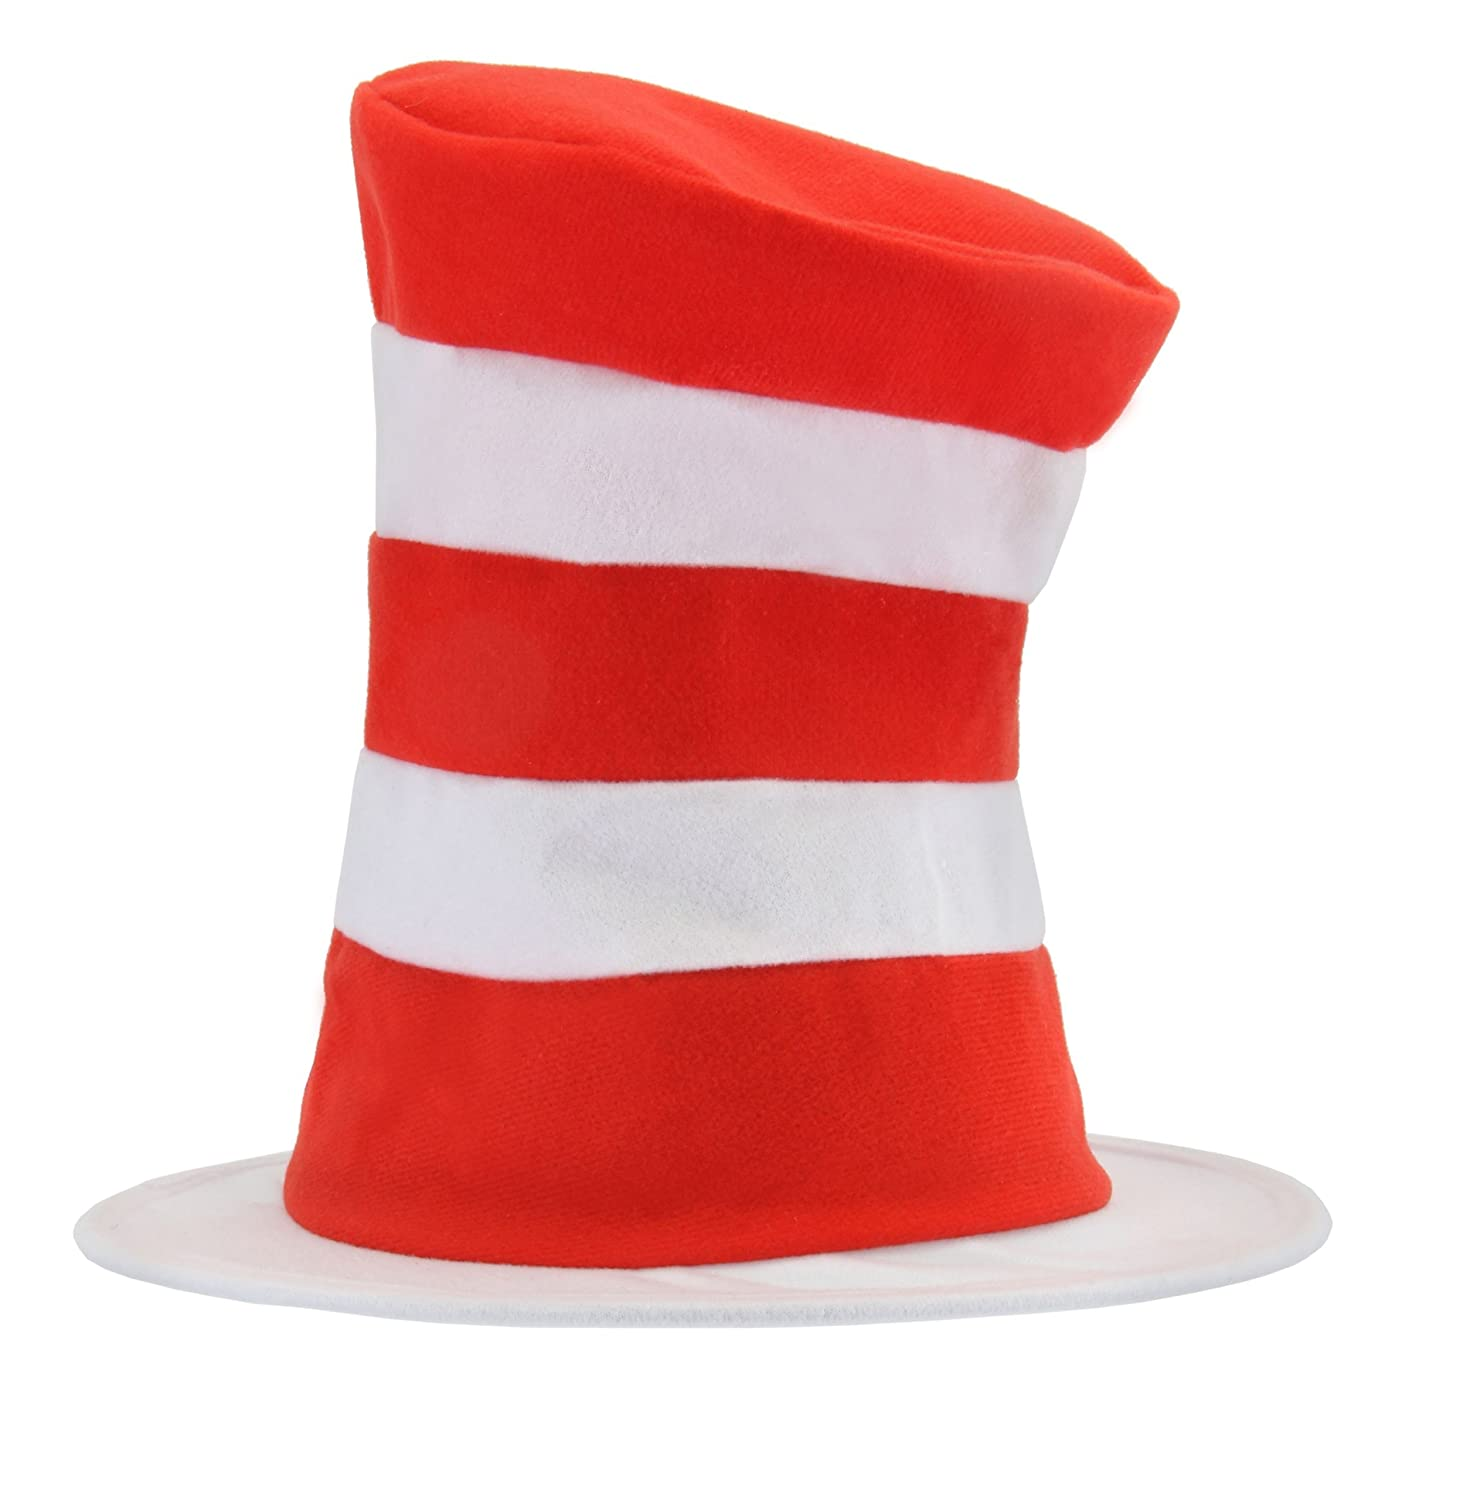 Dr. Seuss Cat in the Hat Costume Hat for Kids by elope elope Inc. 200430